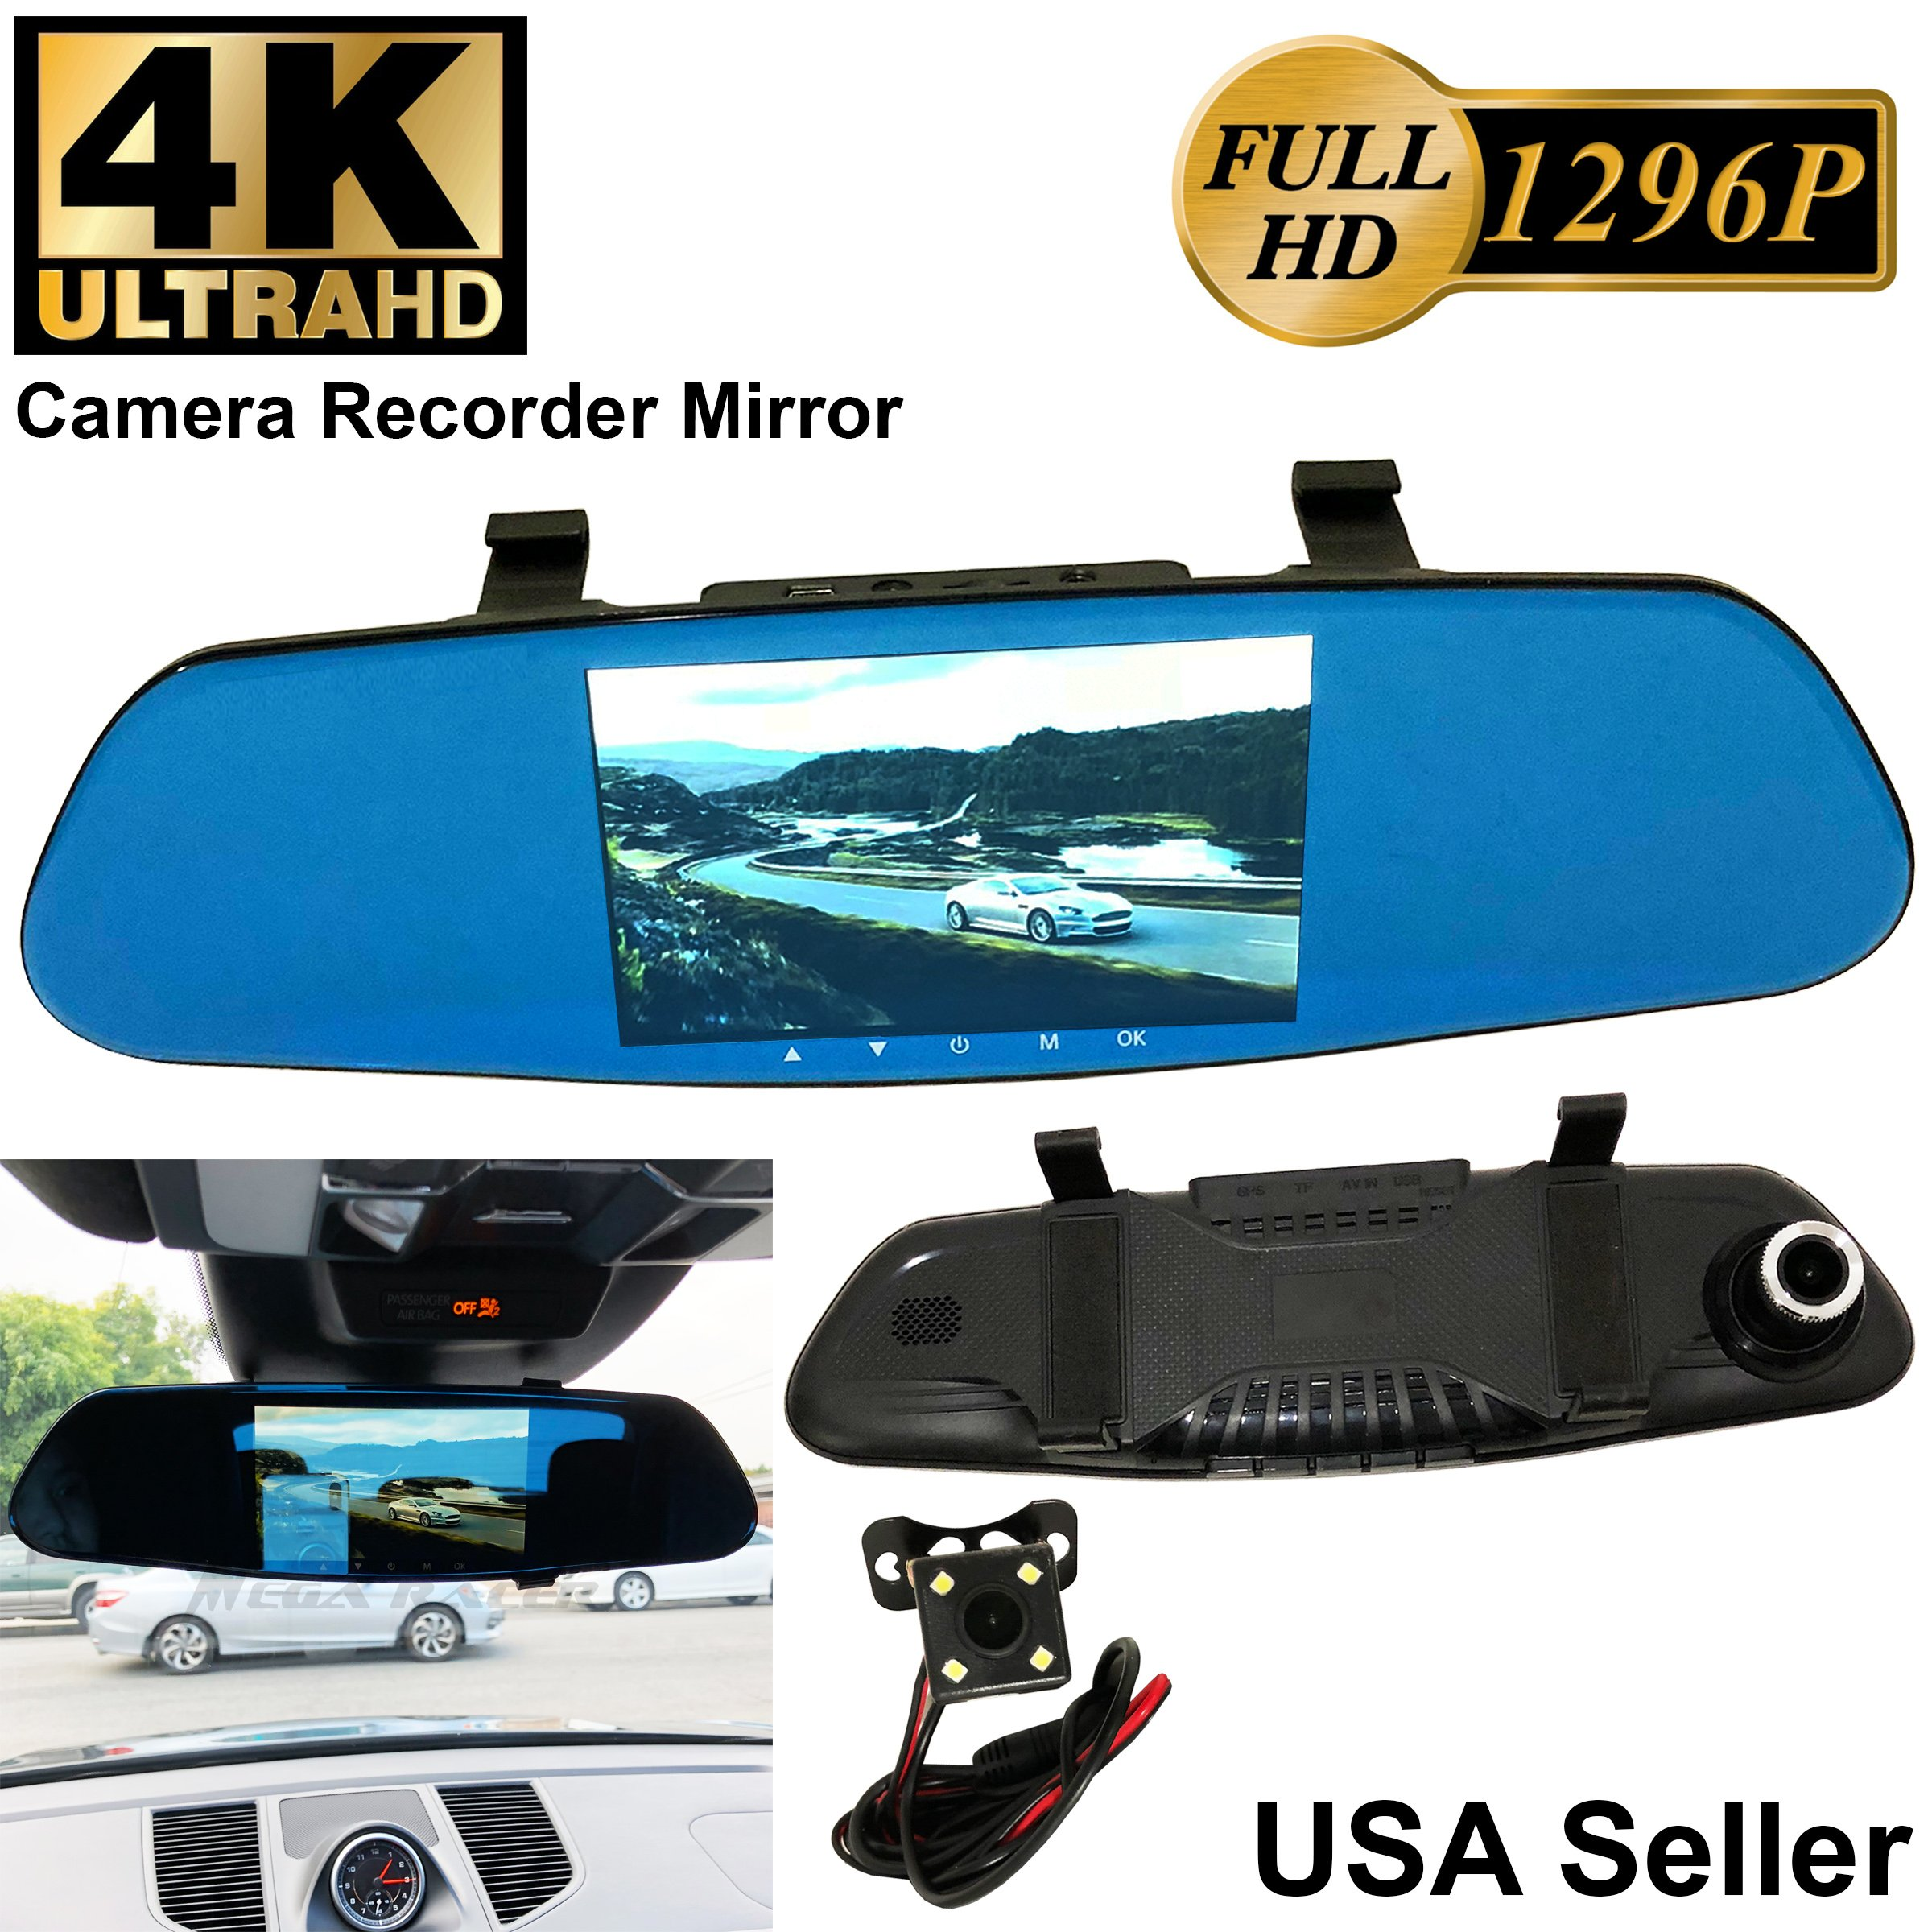 4K ULTRA 5.2 in Full HD 1296P Blue 300mm Auto Front/Back Up Reverse Rear Camera Video Recorder Rearview Rear-View Mirror